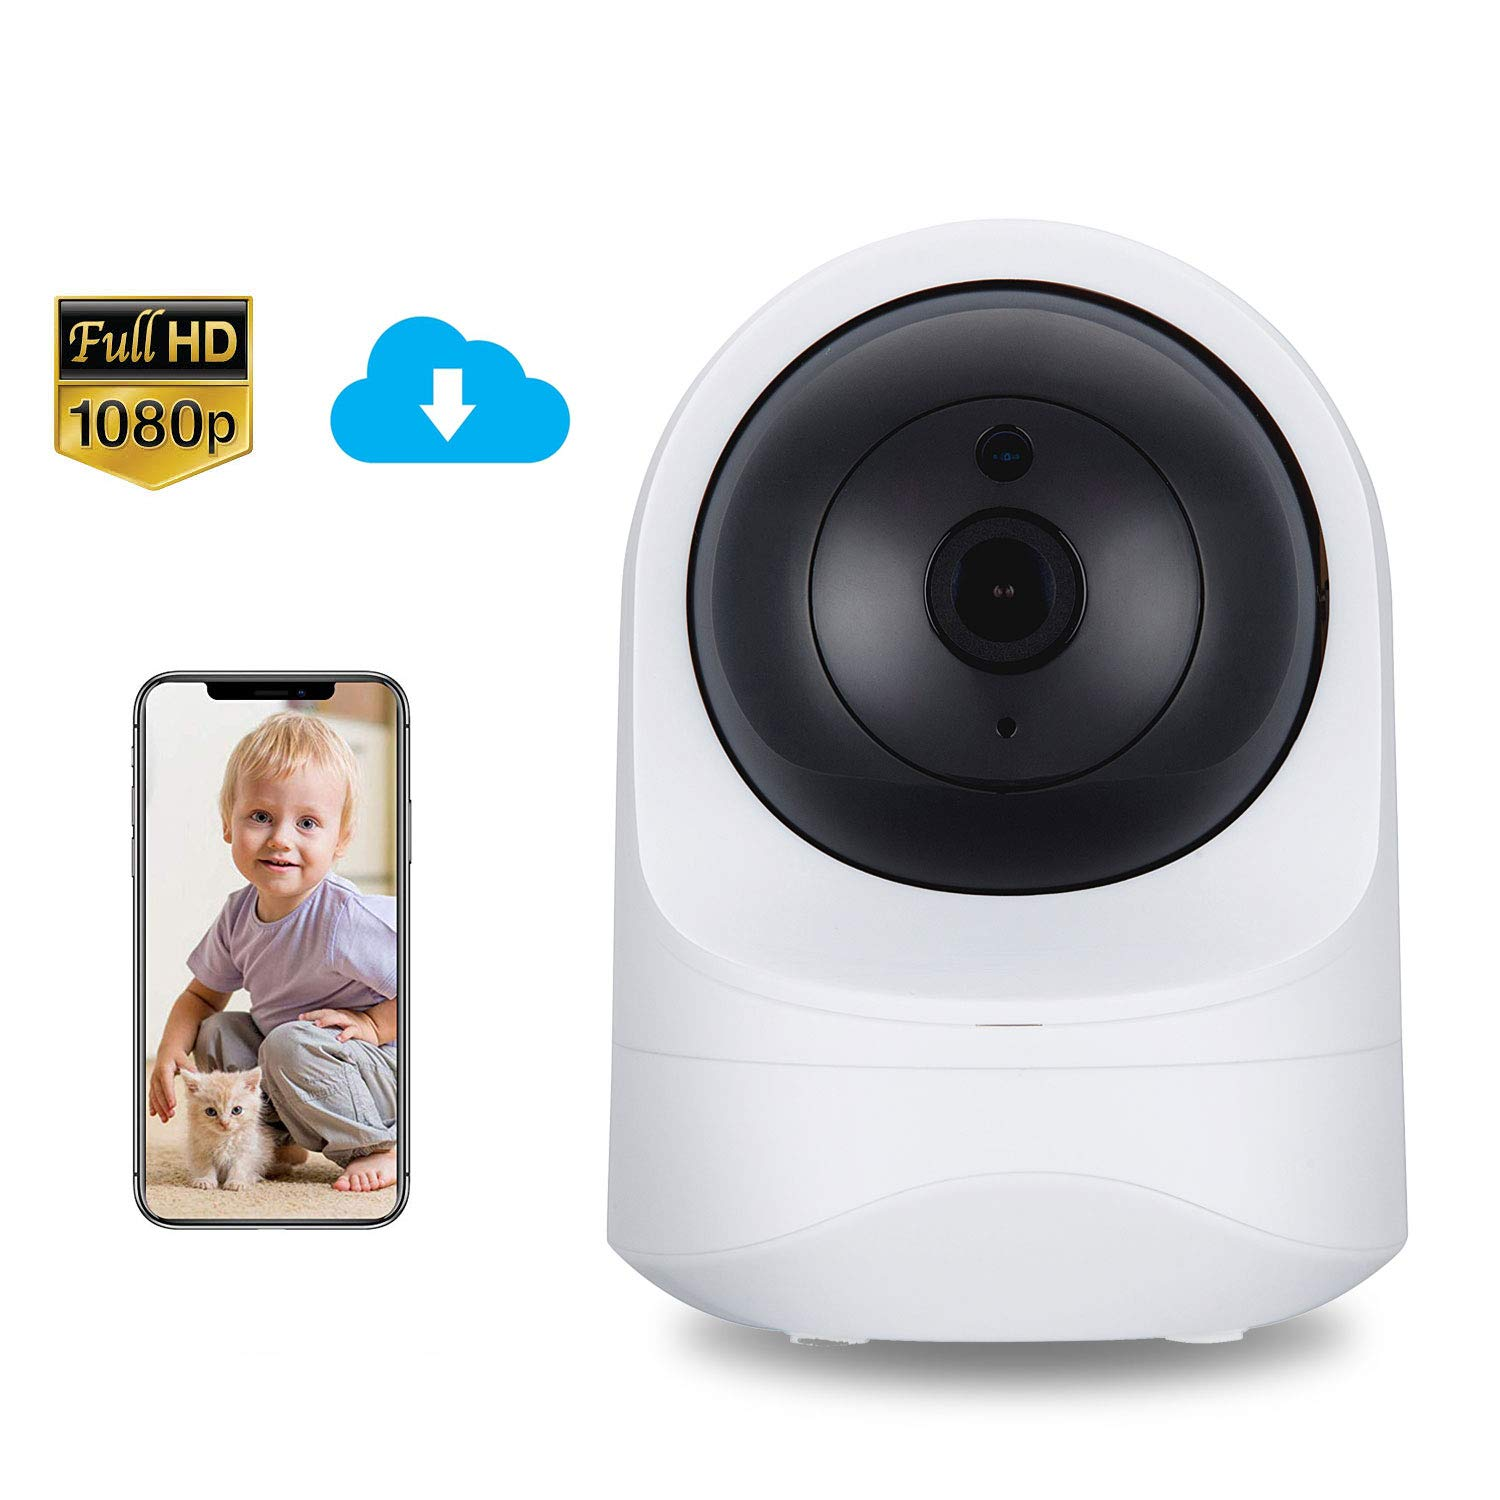 BIZGOOD Baby Monitor 1080P FHD Home WiFi Security Camera Motion Detection with Night Vision 2-Way Audio Available Monitor Baby Elder Pet Compatible with iOS Android,Works with Alexa